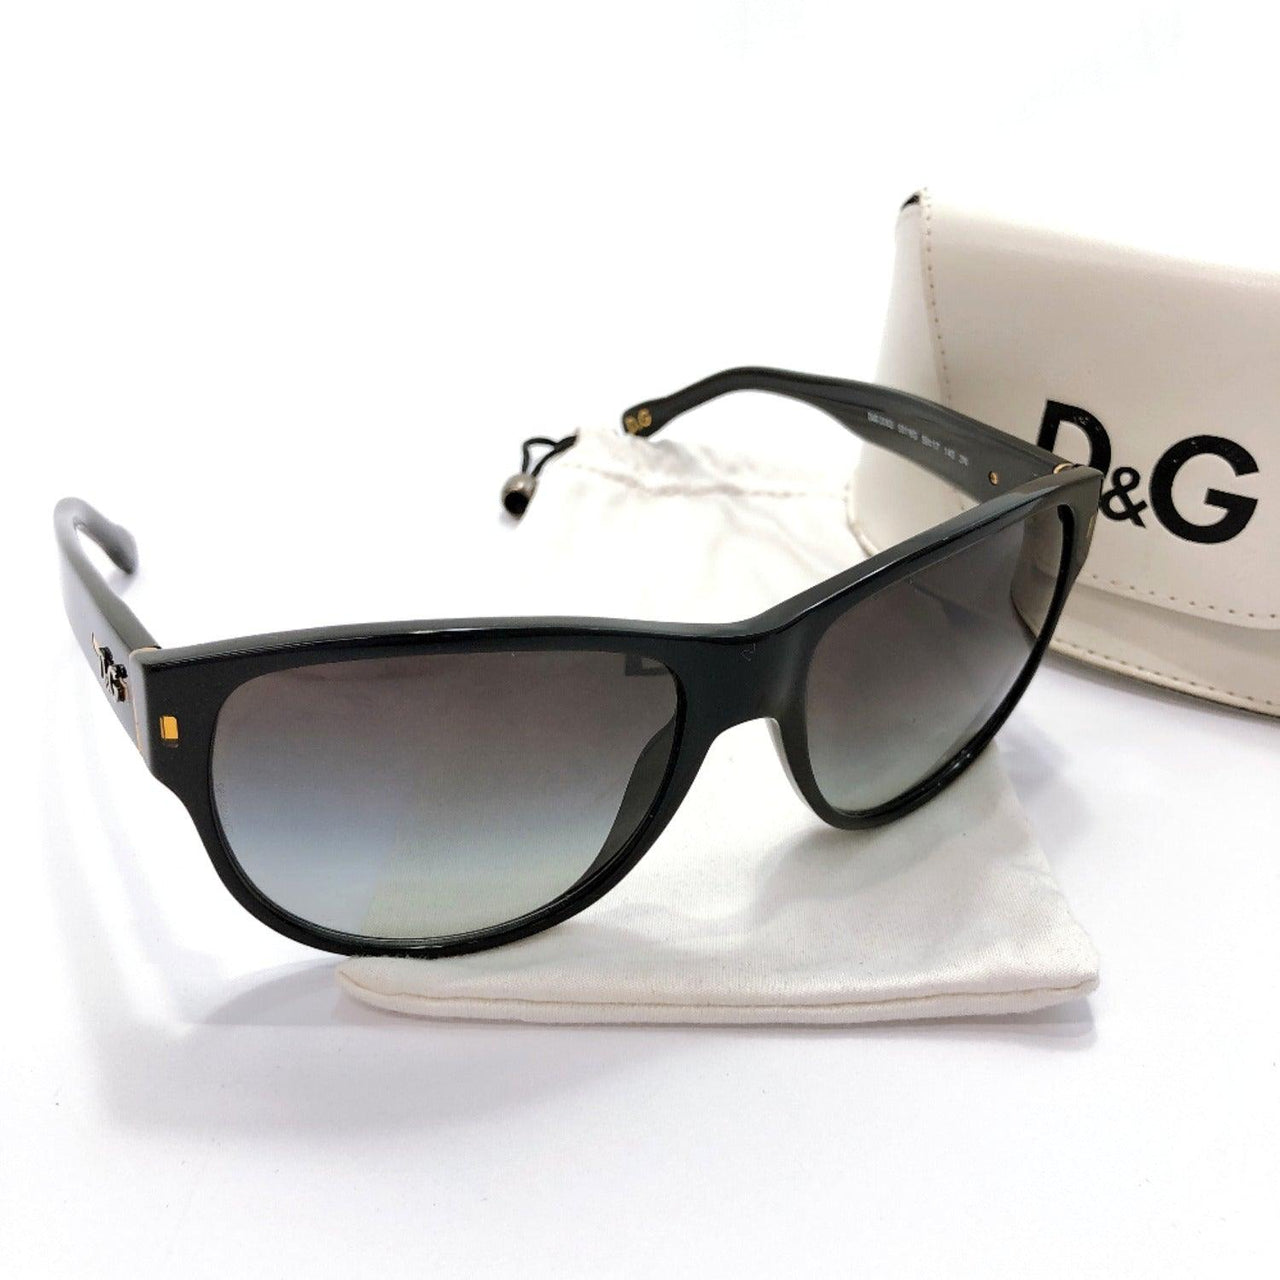 DOLCE&GABBANA sunglasses 3062 Synthetic resin black unisex Used